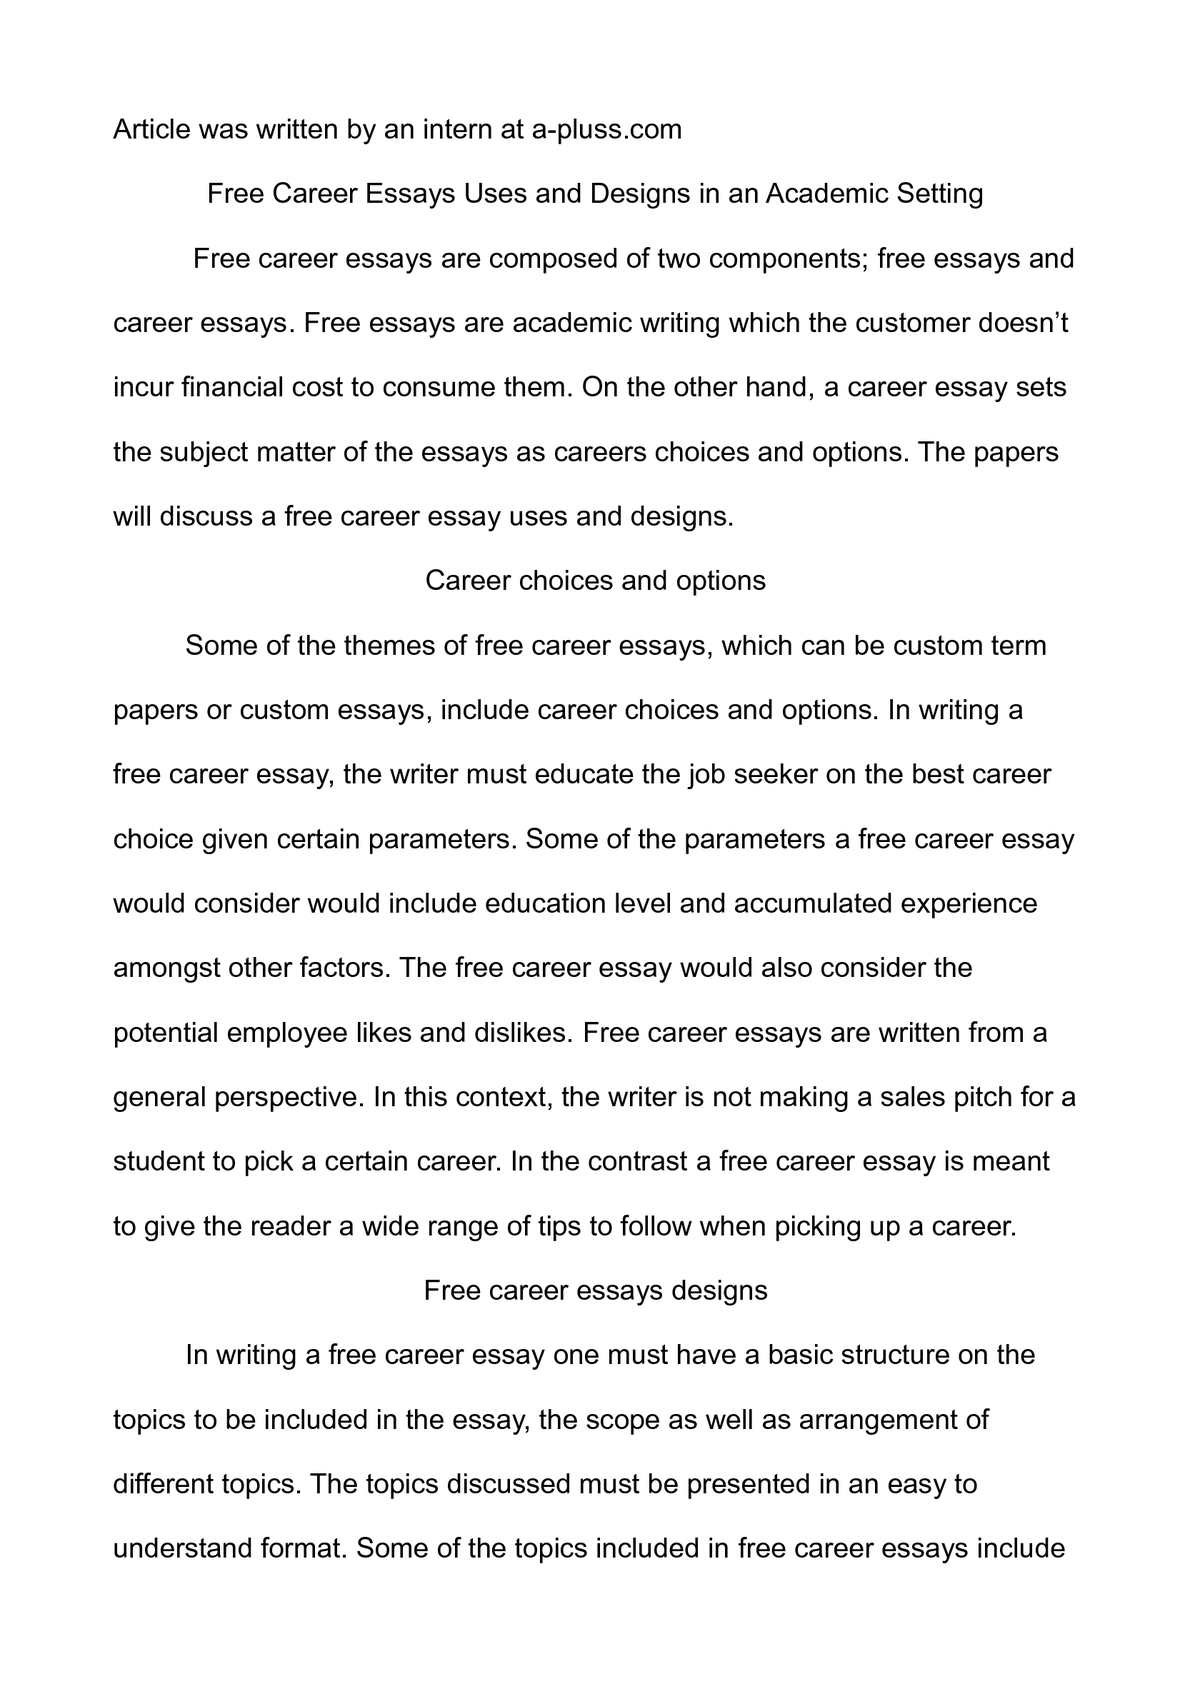 Calam o free career essays uses and designs in an academic setting